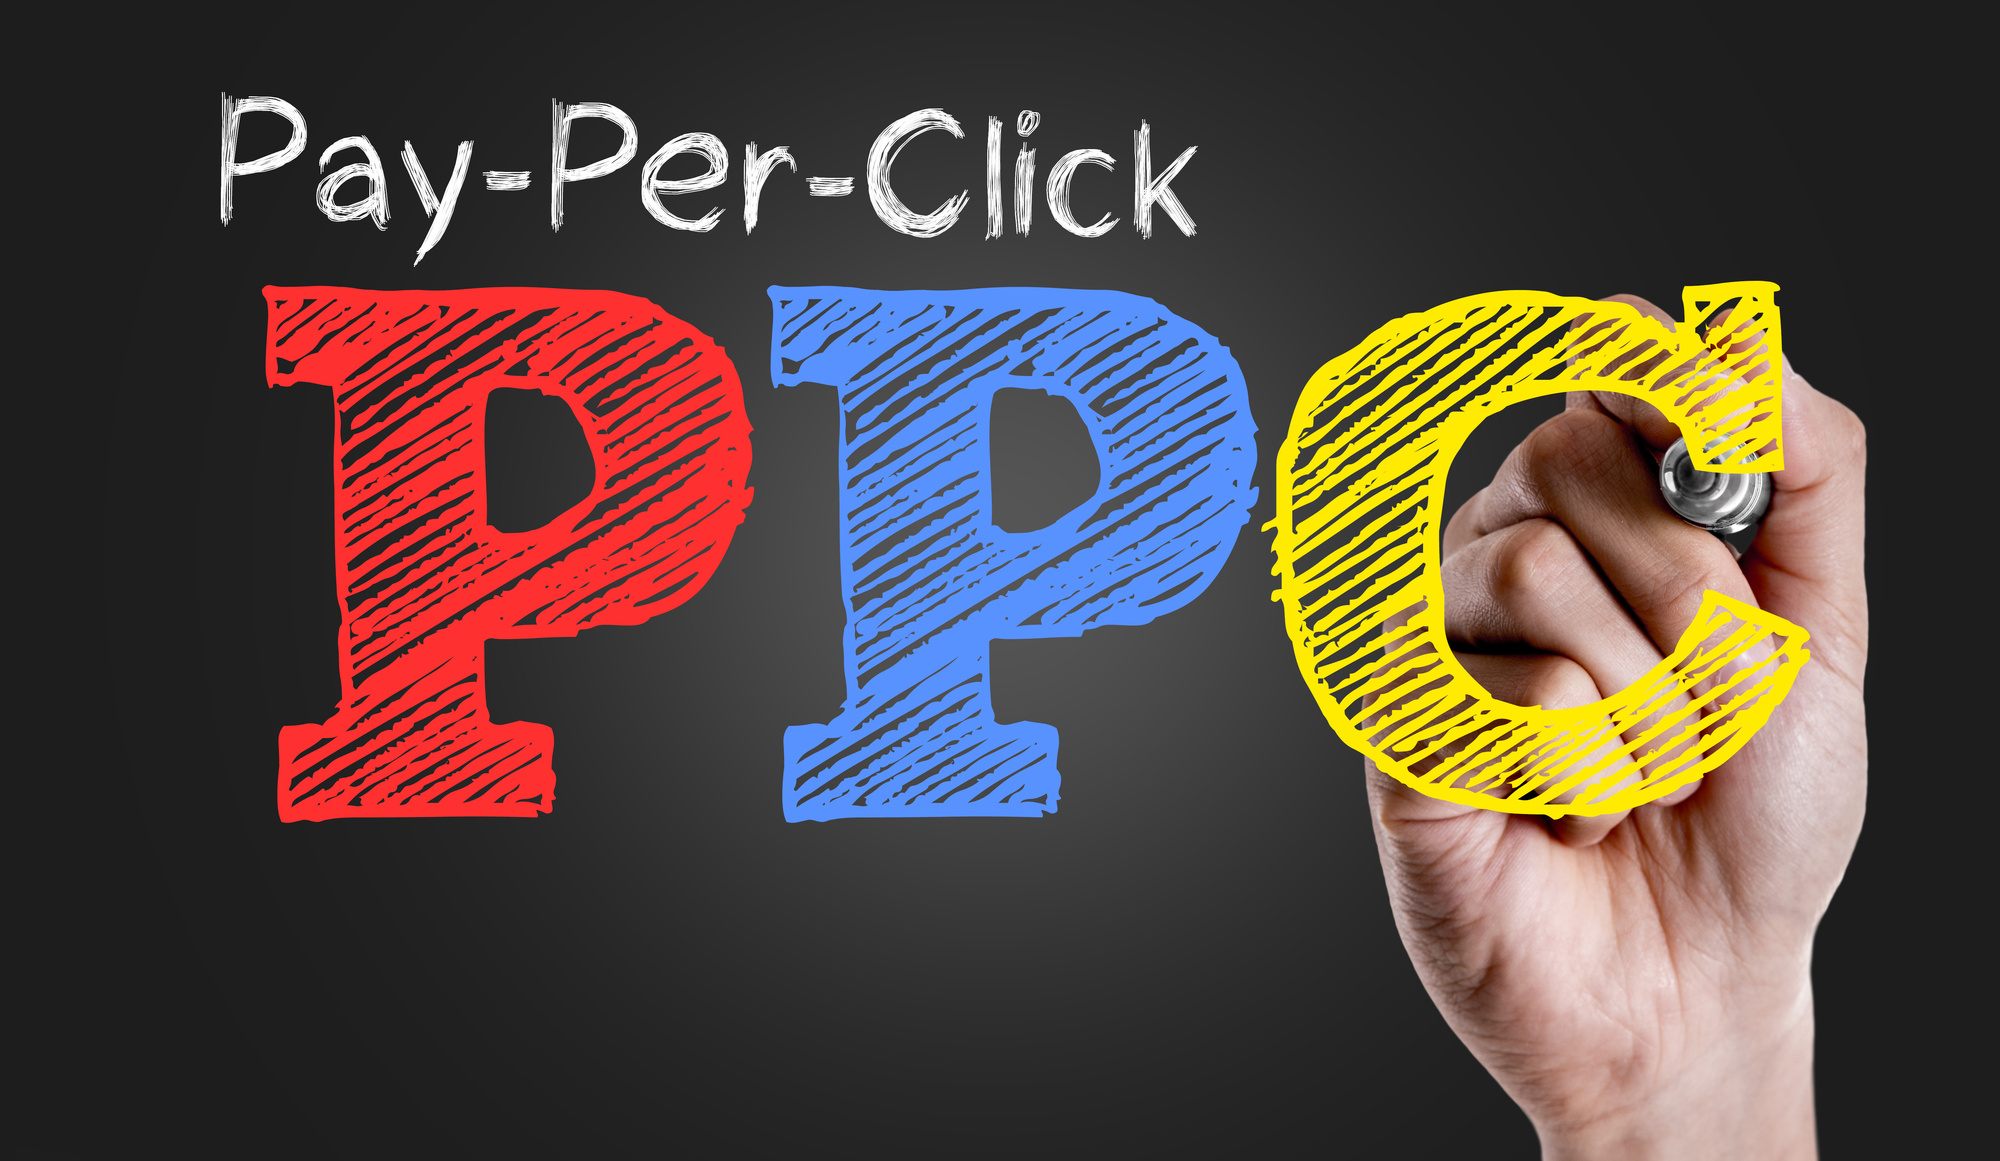 ppc advertising writing text